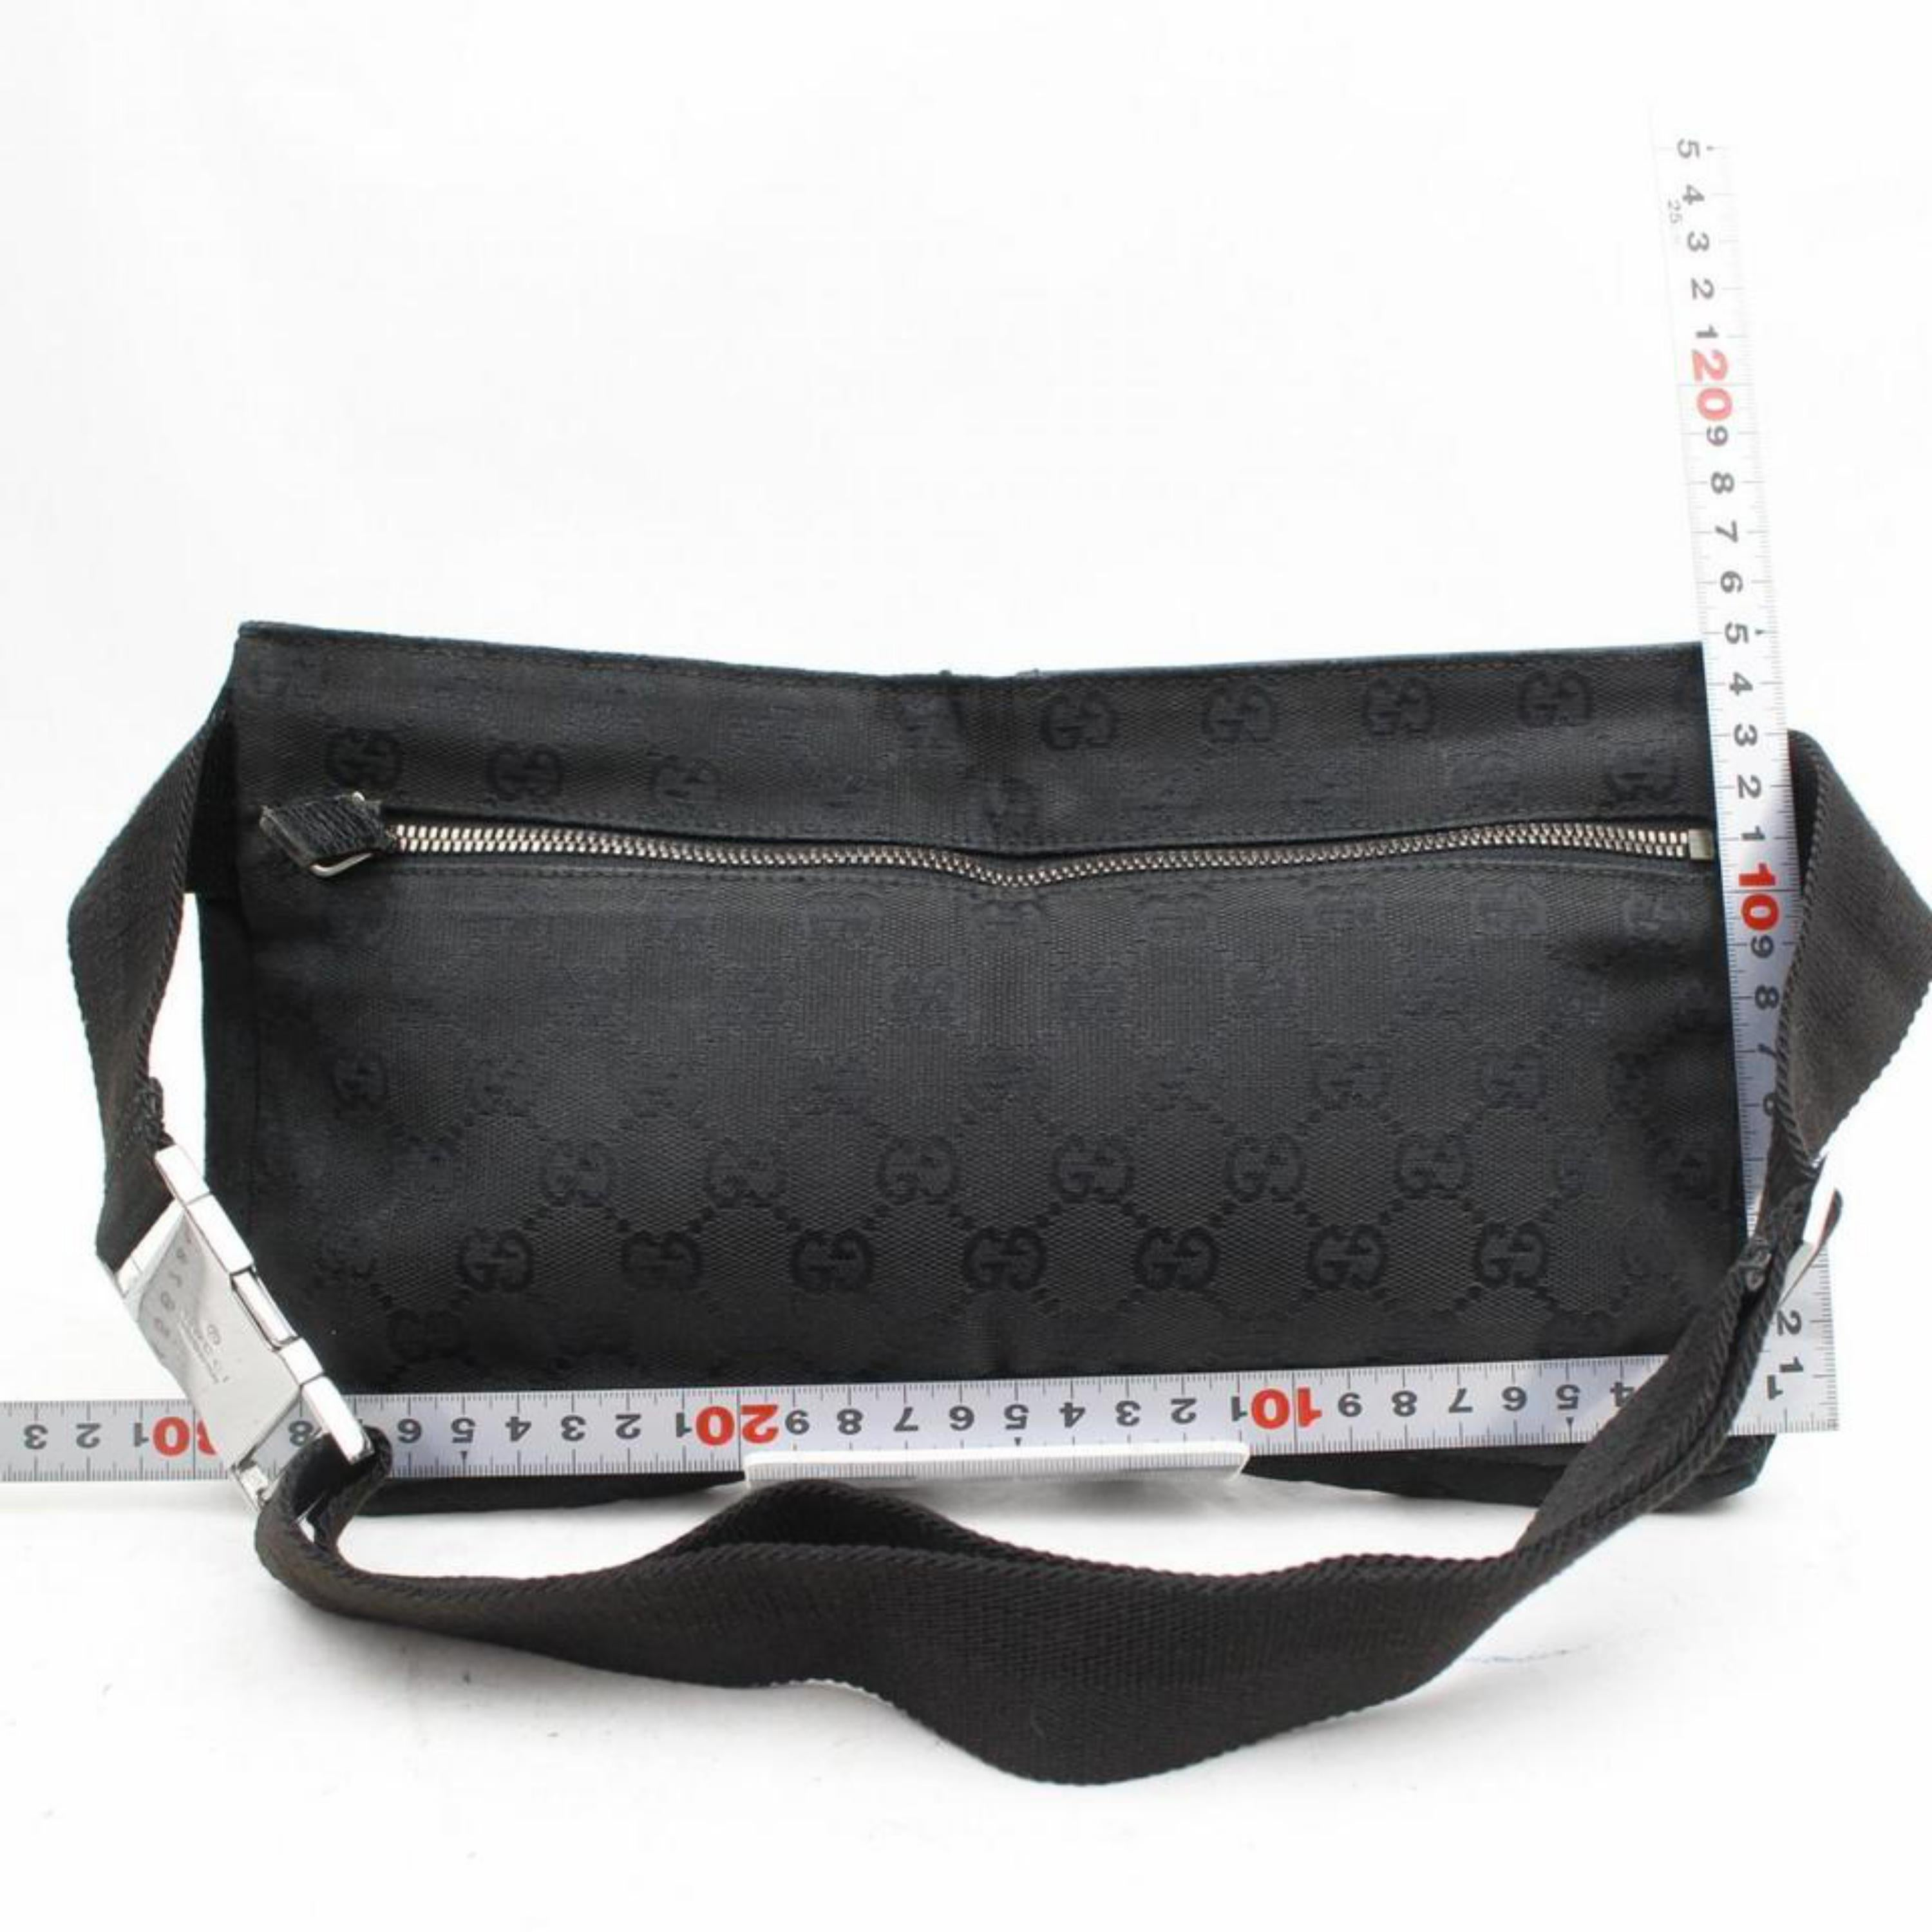 82751cab571 Gucci Monogram Belt Fanny Pack Waist Pouch 869190 Black Canvas Cross Body  Bag For Sale at 1stdibs